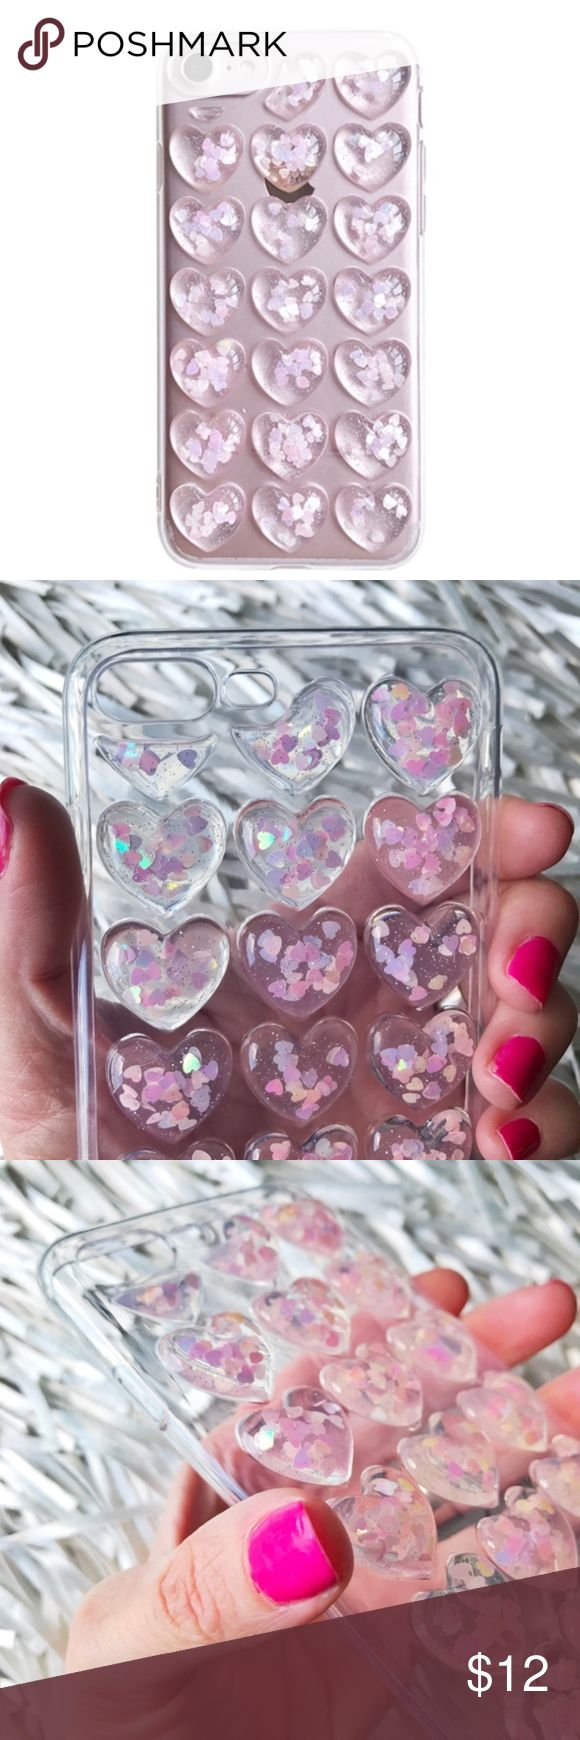 NEW iPhone 7 Plus/8 Plus 3D Glitter Soft TPU Case ▪️Fits iPhone 7 or 8 Plus Models     ▪️High Quality Soft TPU - Thick & Shock-Resistant     ▪️Same or Next Business Day Shipping !     **Phone Not Included** Accessories Phone Cases